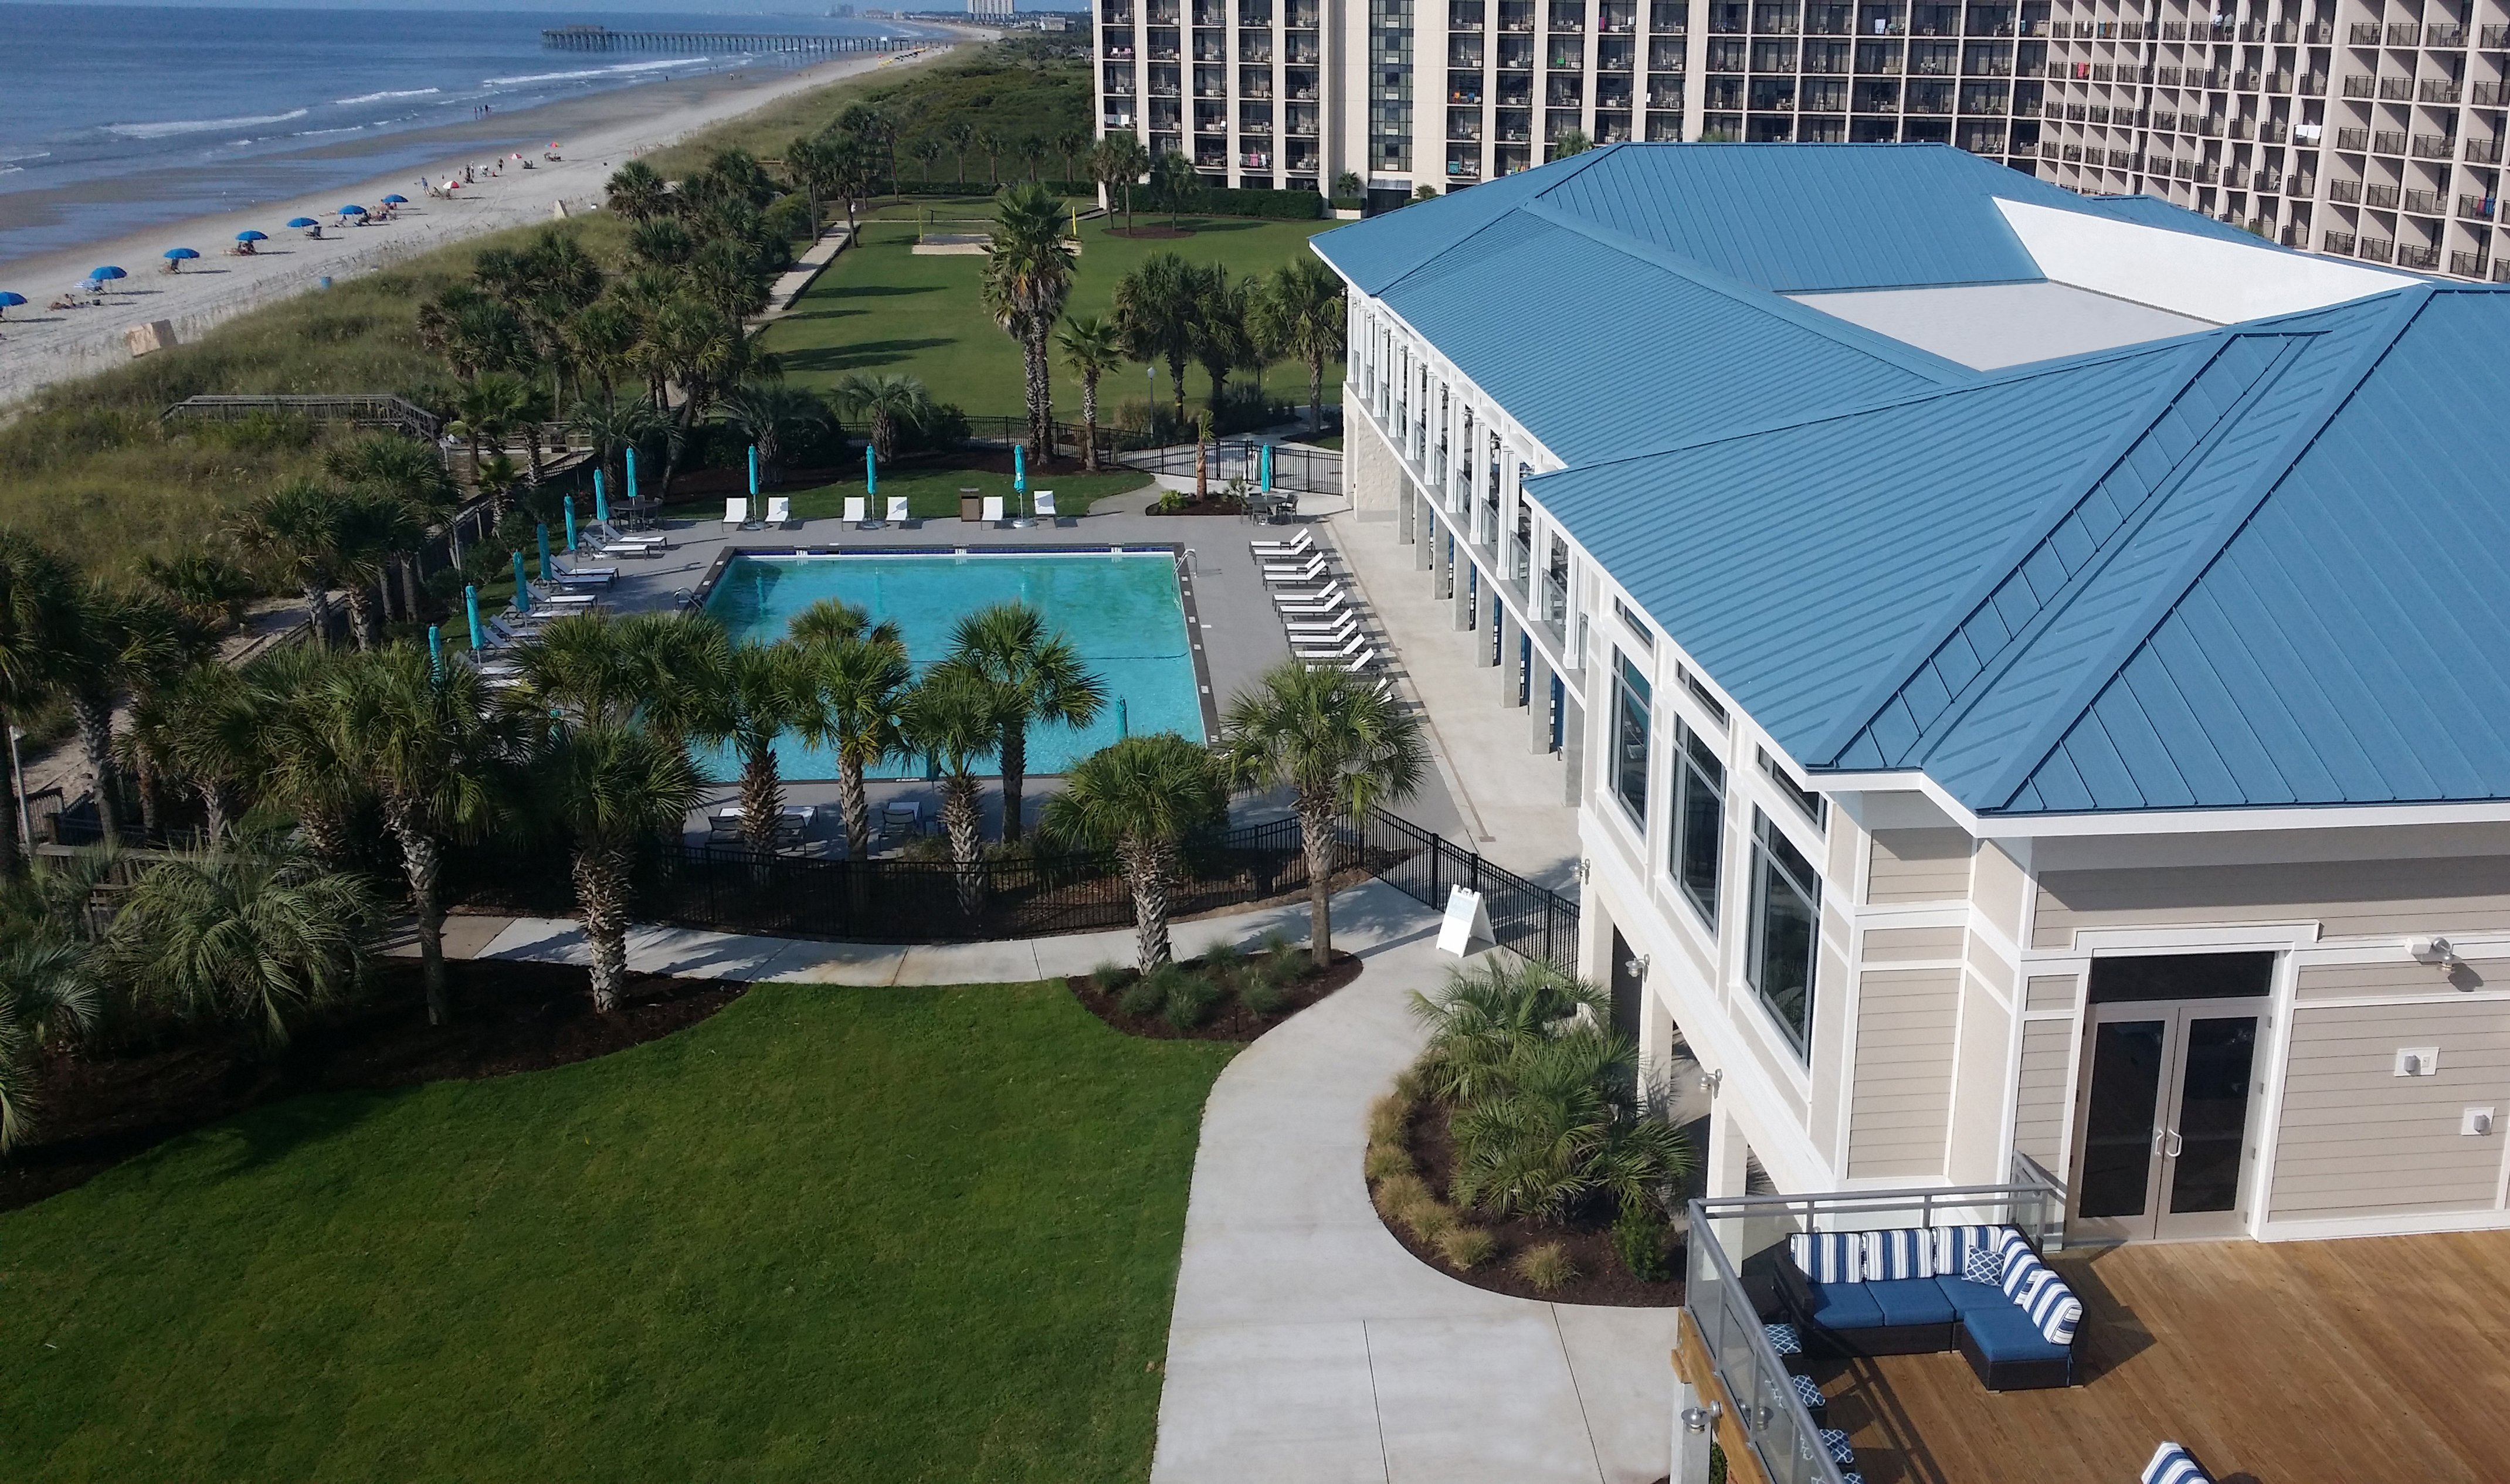 Doubletree Resort By Hilton Myrtle Beach Oceanfront Debuts After Property Wide Renovation